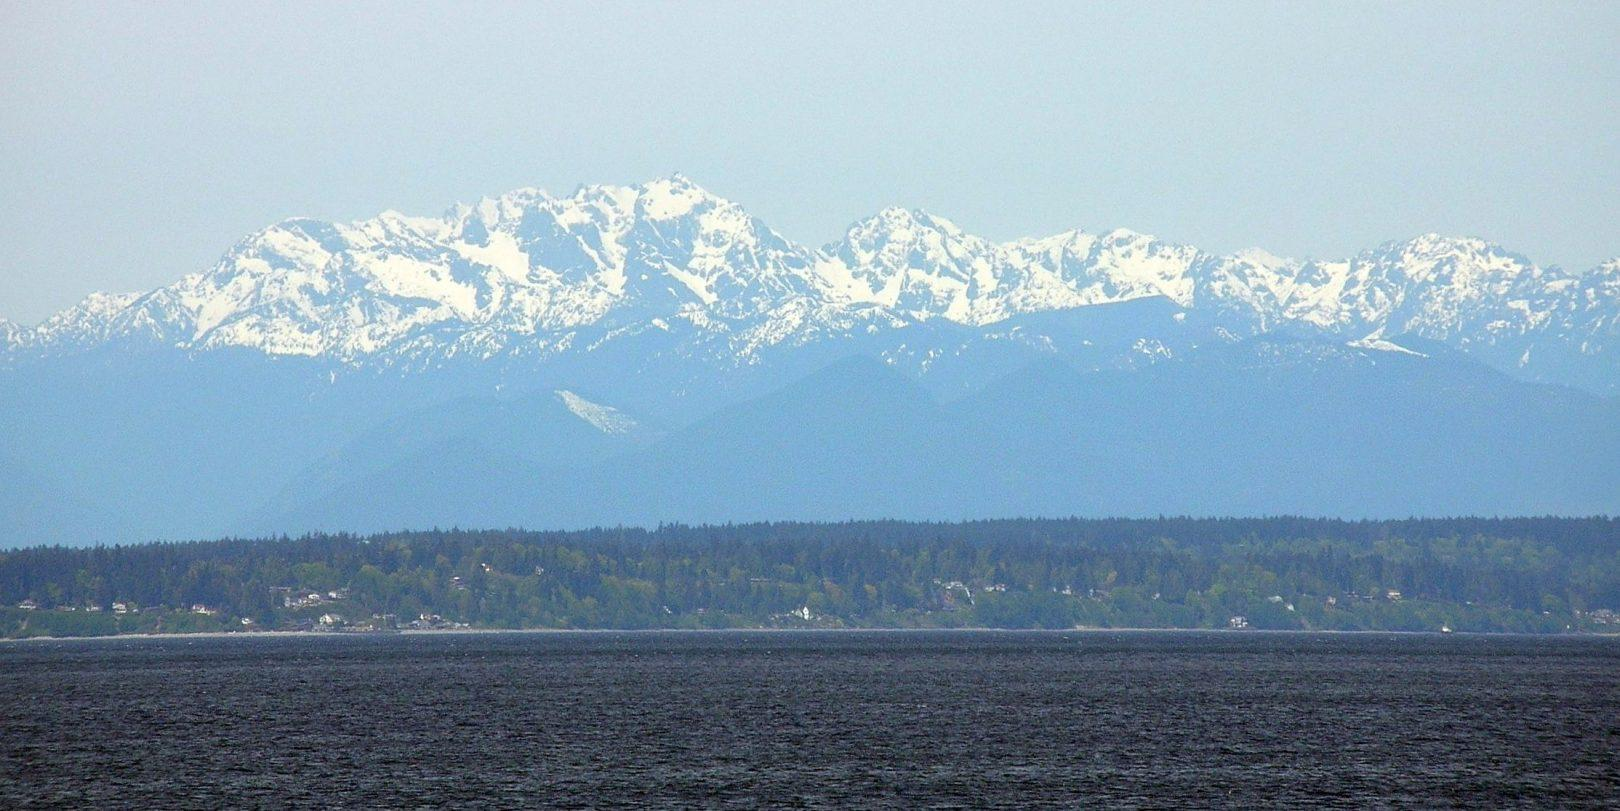 The Olympic mountains above Puget Sound, Russell's picturesque view from his commandeered plane.